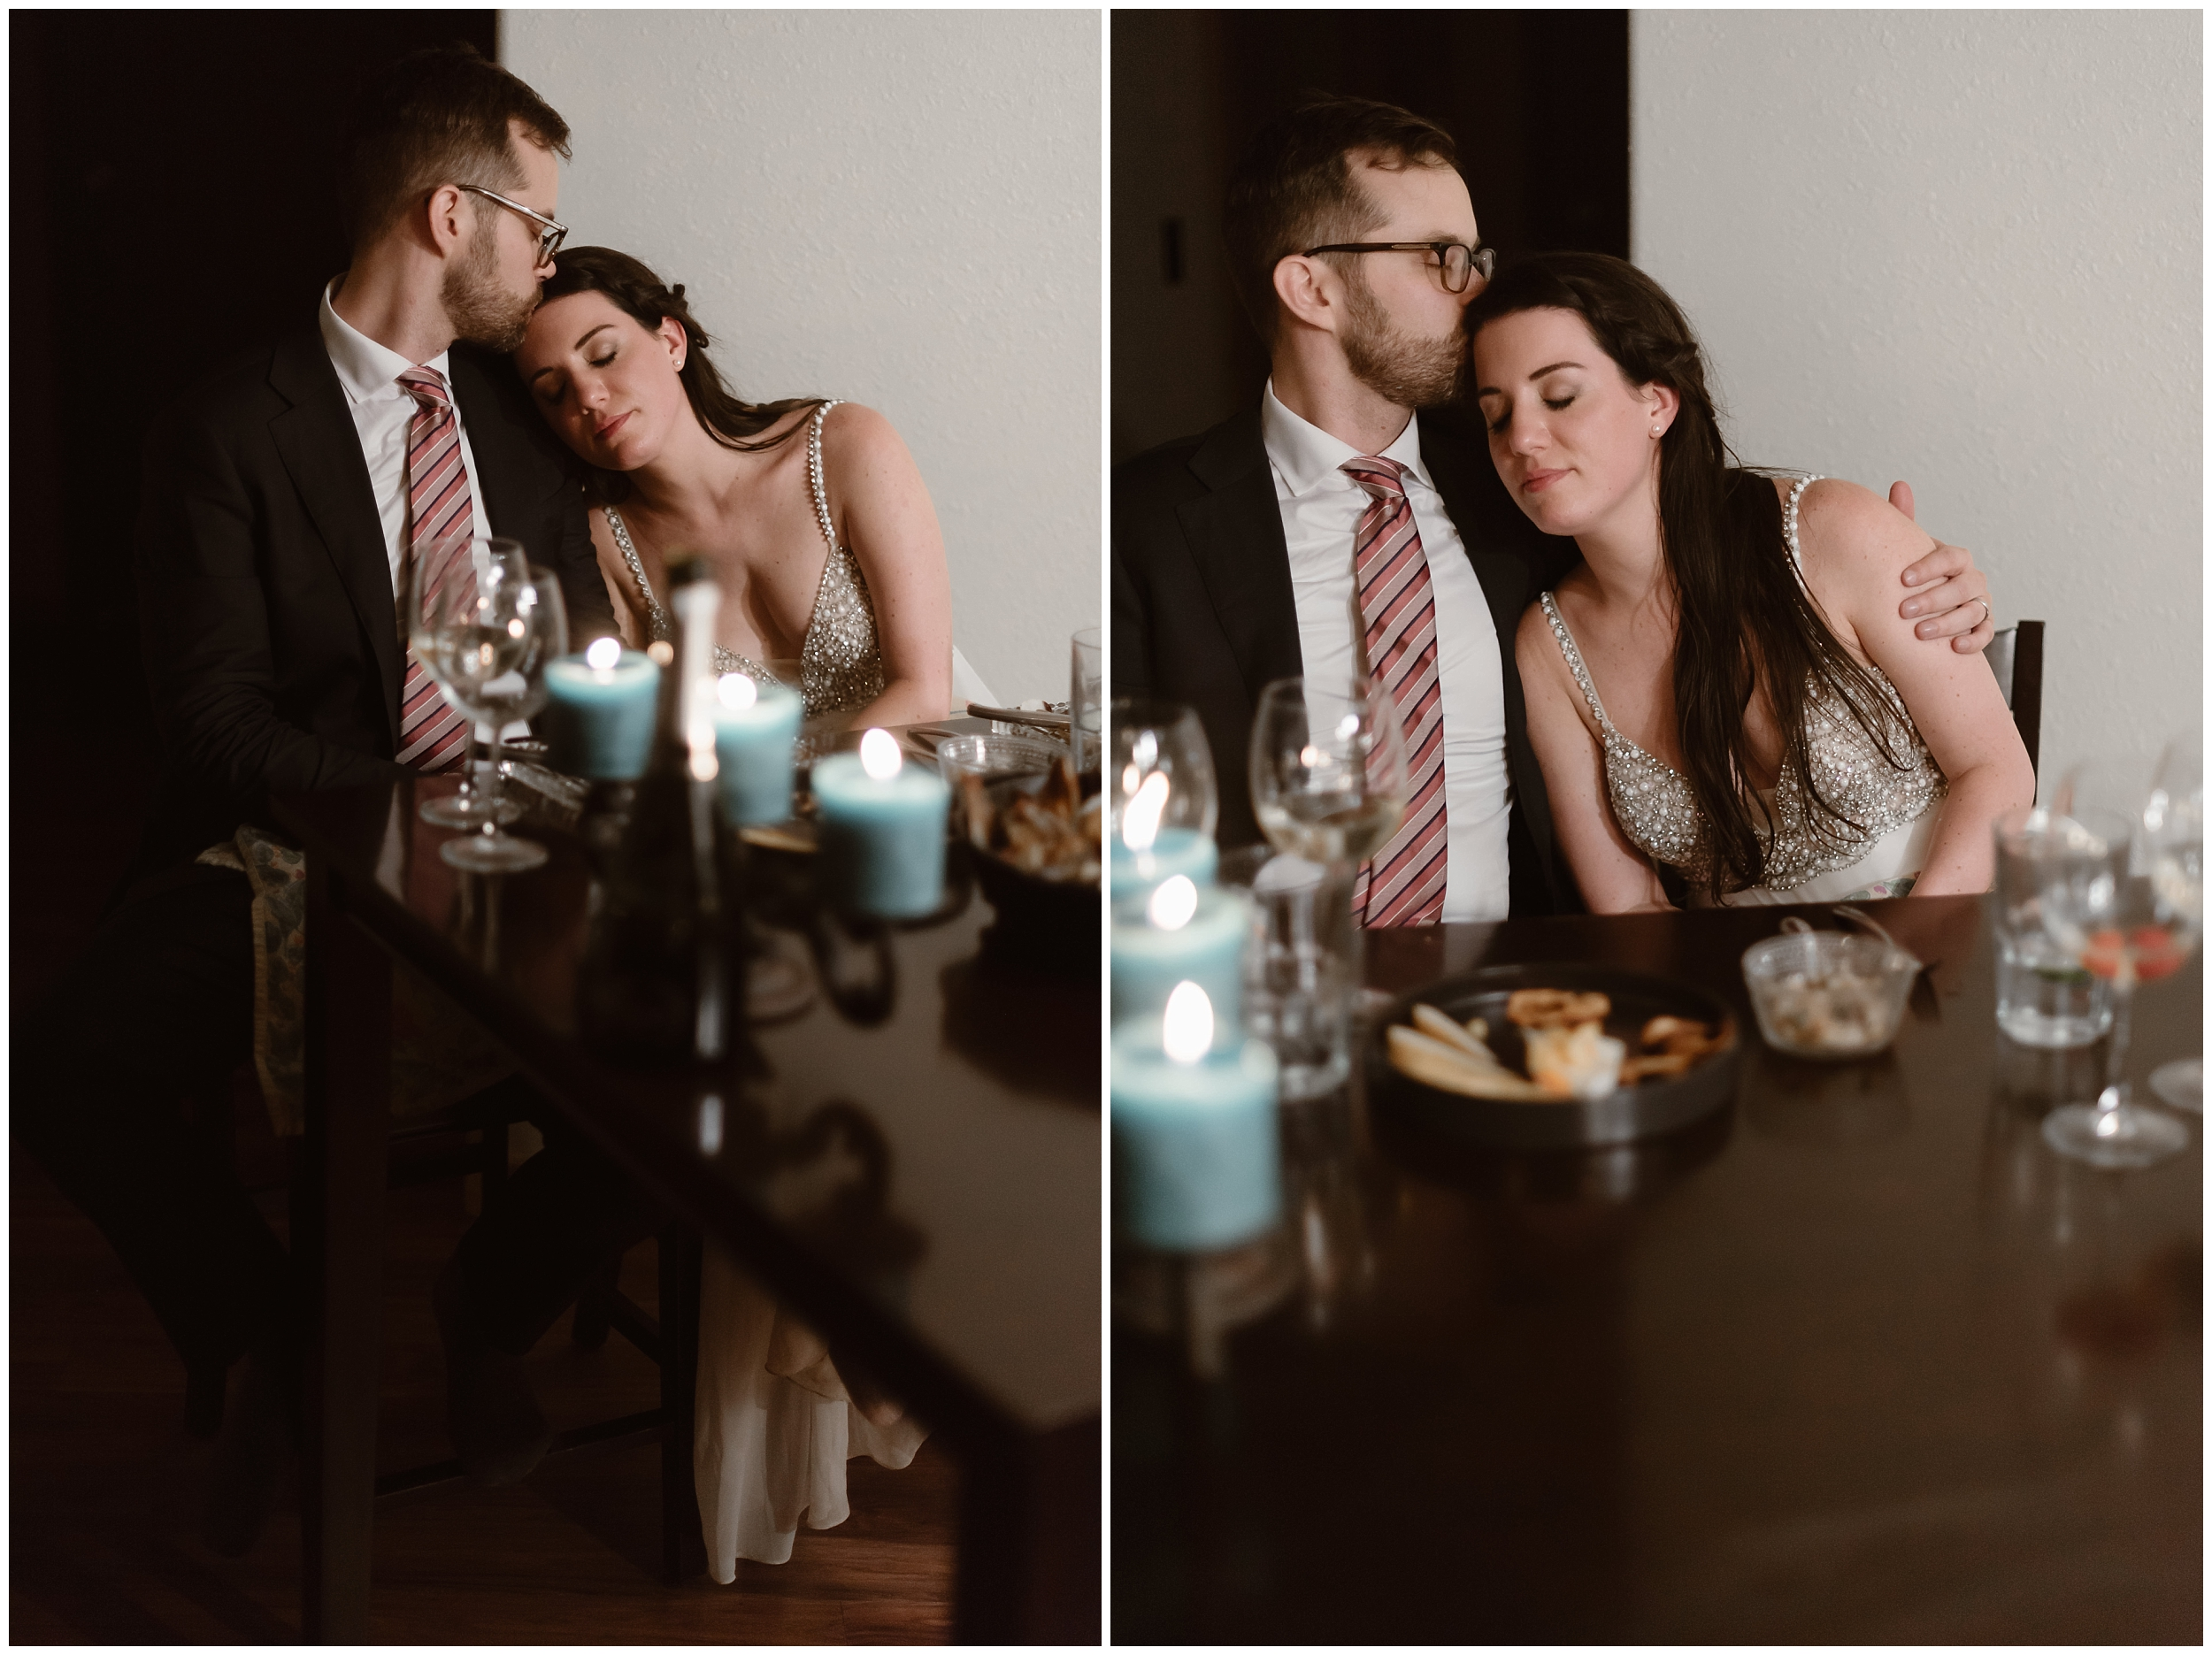 These side-by-side elopement photo show Katie and Logan, the bride and the groom, sitting at the table in their Airbnb after their elopement ceremony. Exhausted but happy, the two snuggle close. In the photo to the left, Logan kisses Katie on the forehead. In the elopement picture on the right, the two snuggle in close and wait for their reception after eloping dinner.